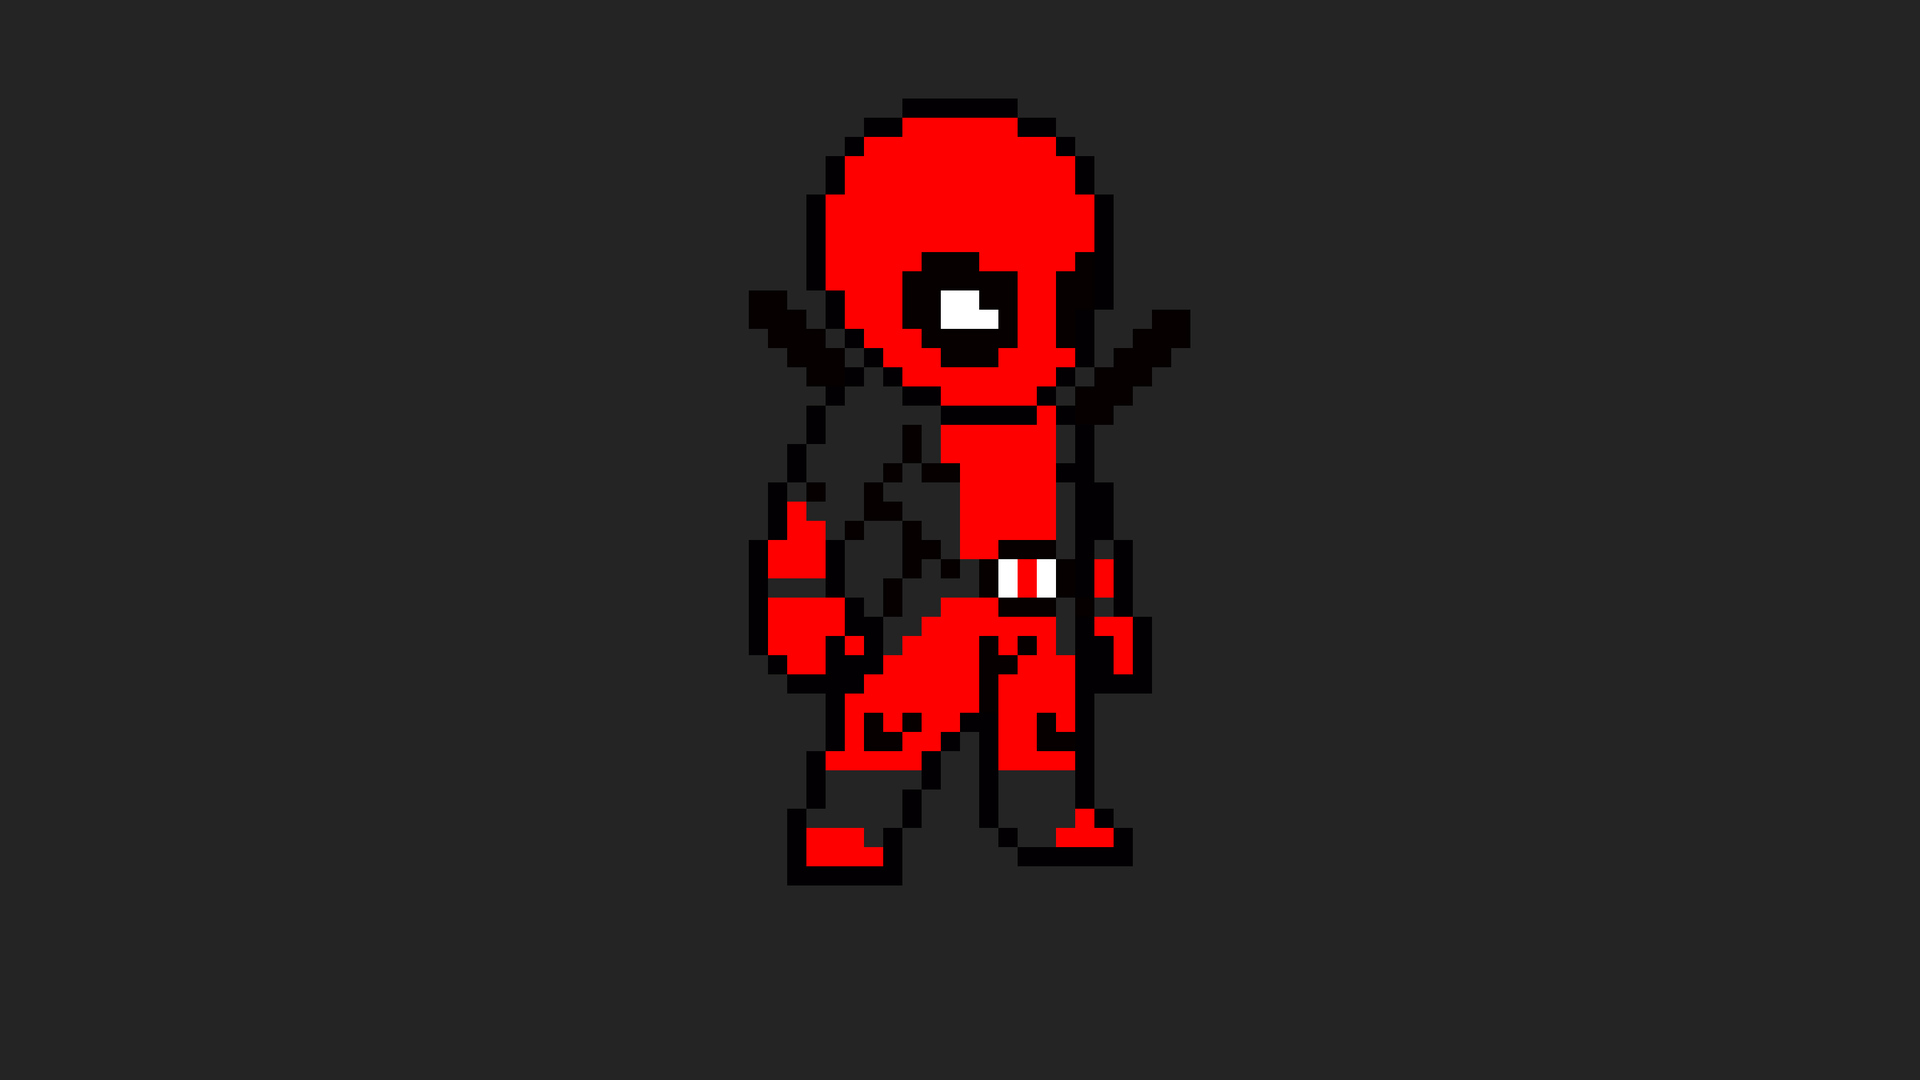 deadpool-8-bit-art-bt.jpg